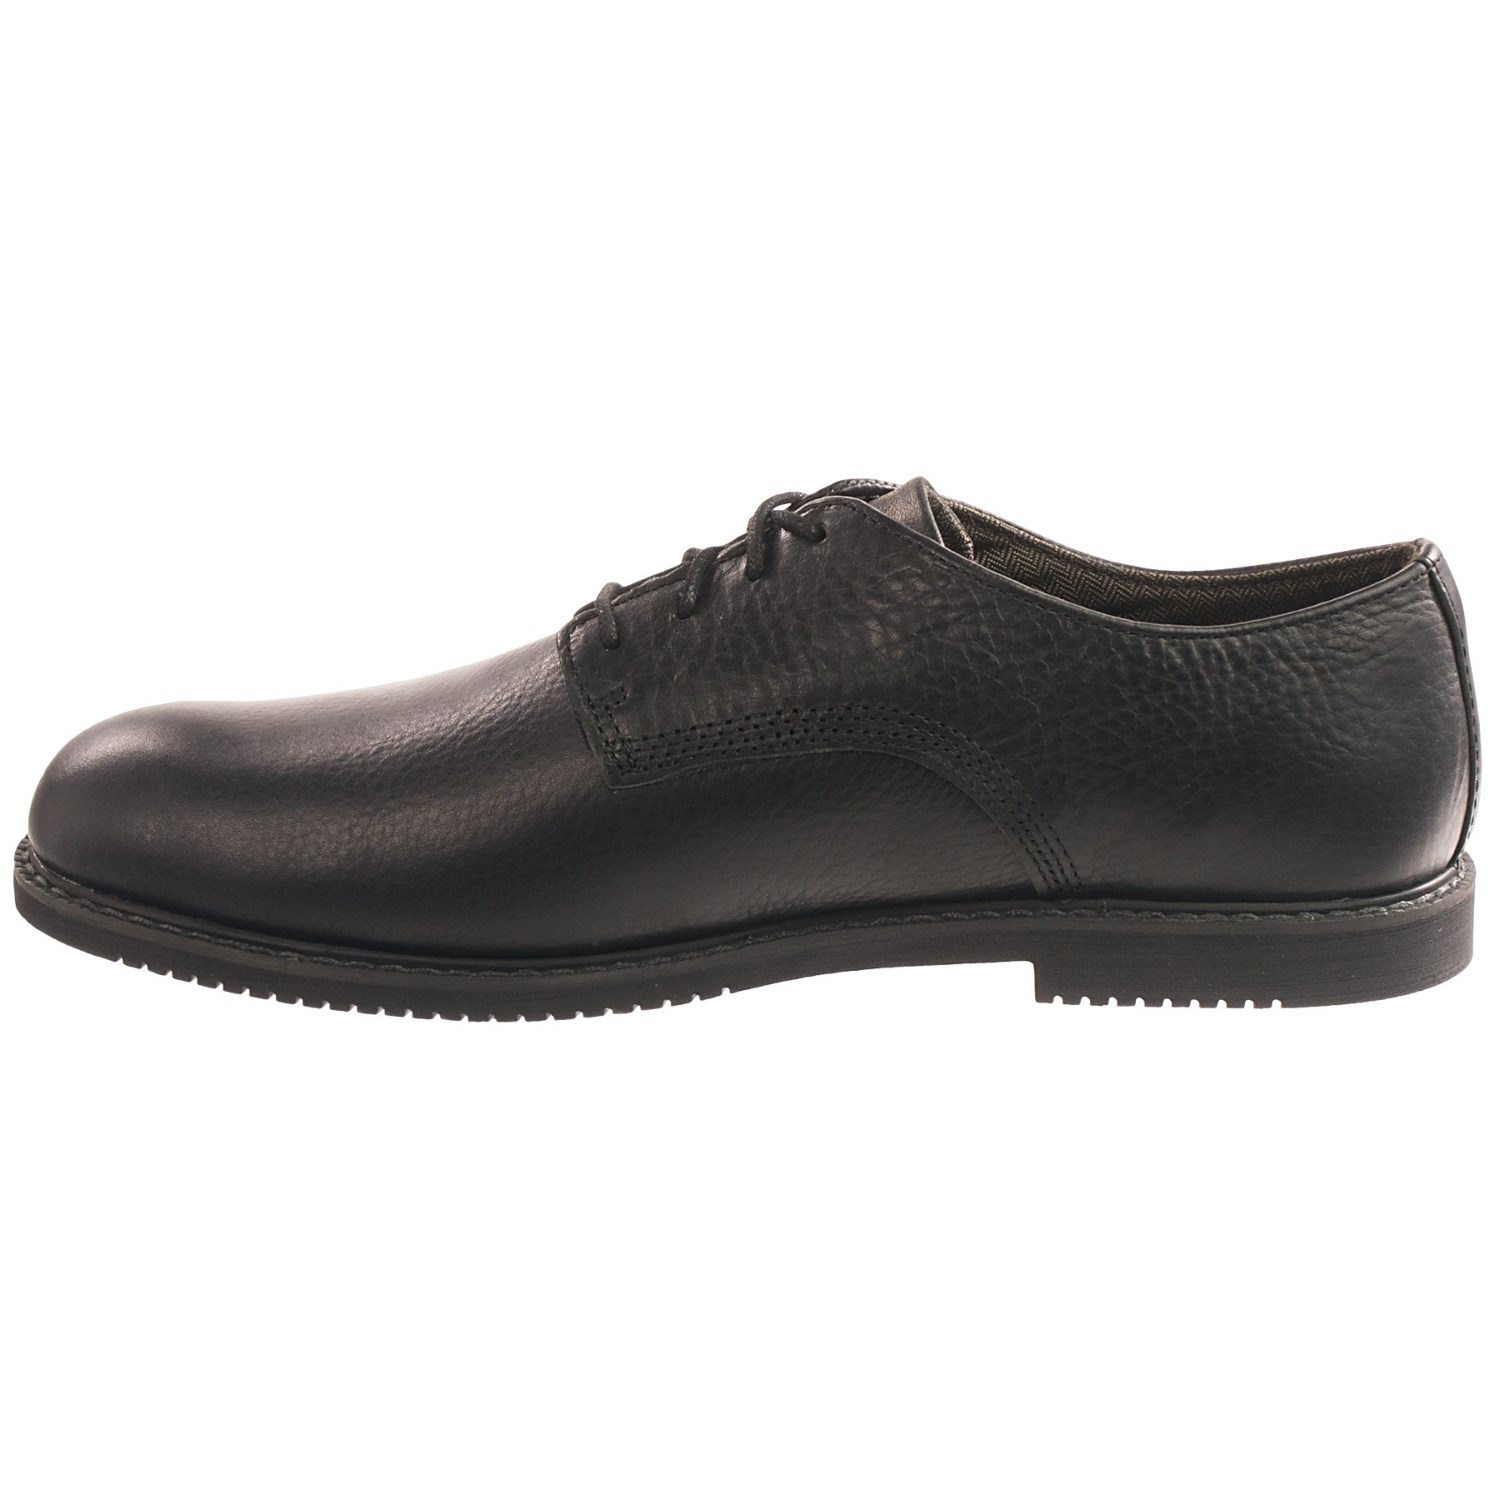 Timberland Earthkeepers Richmont Leather Oxford Shoes